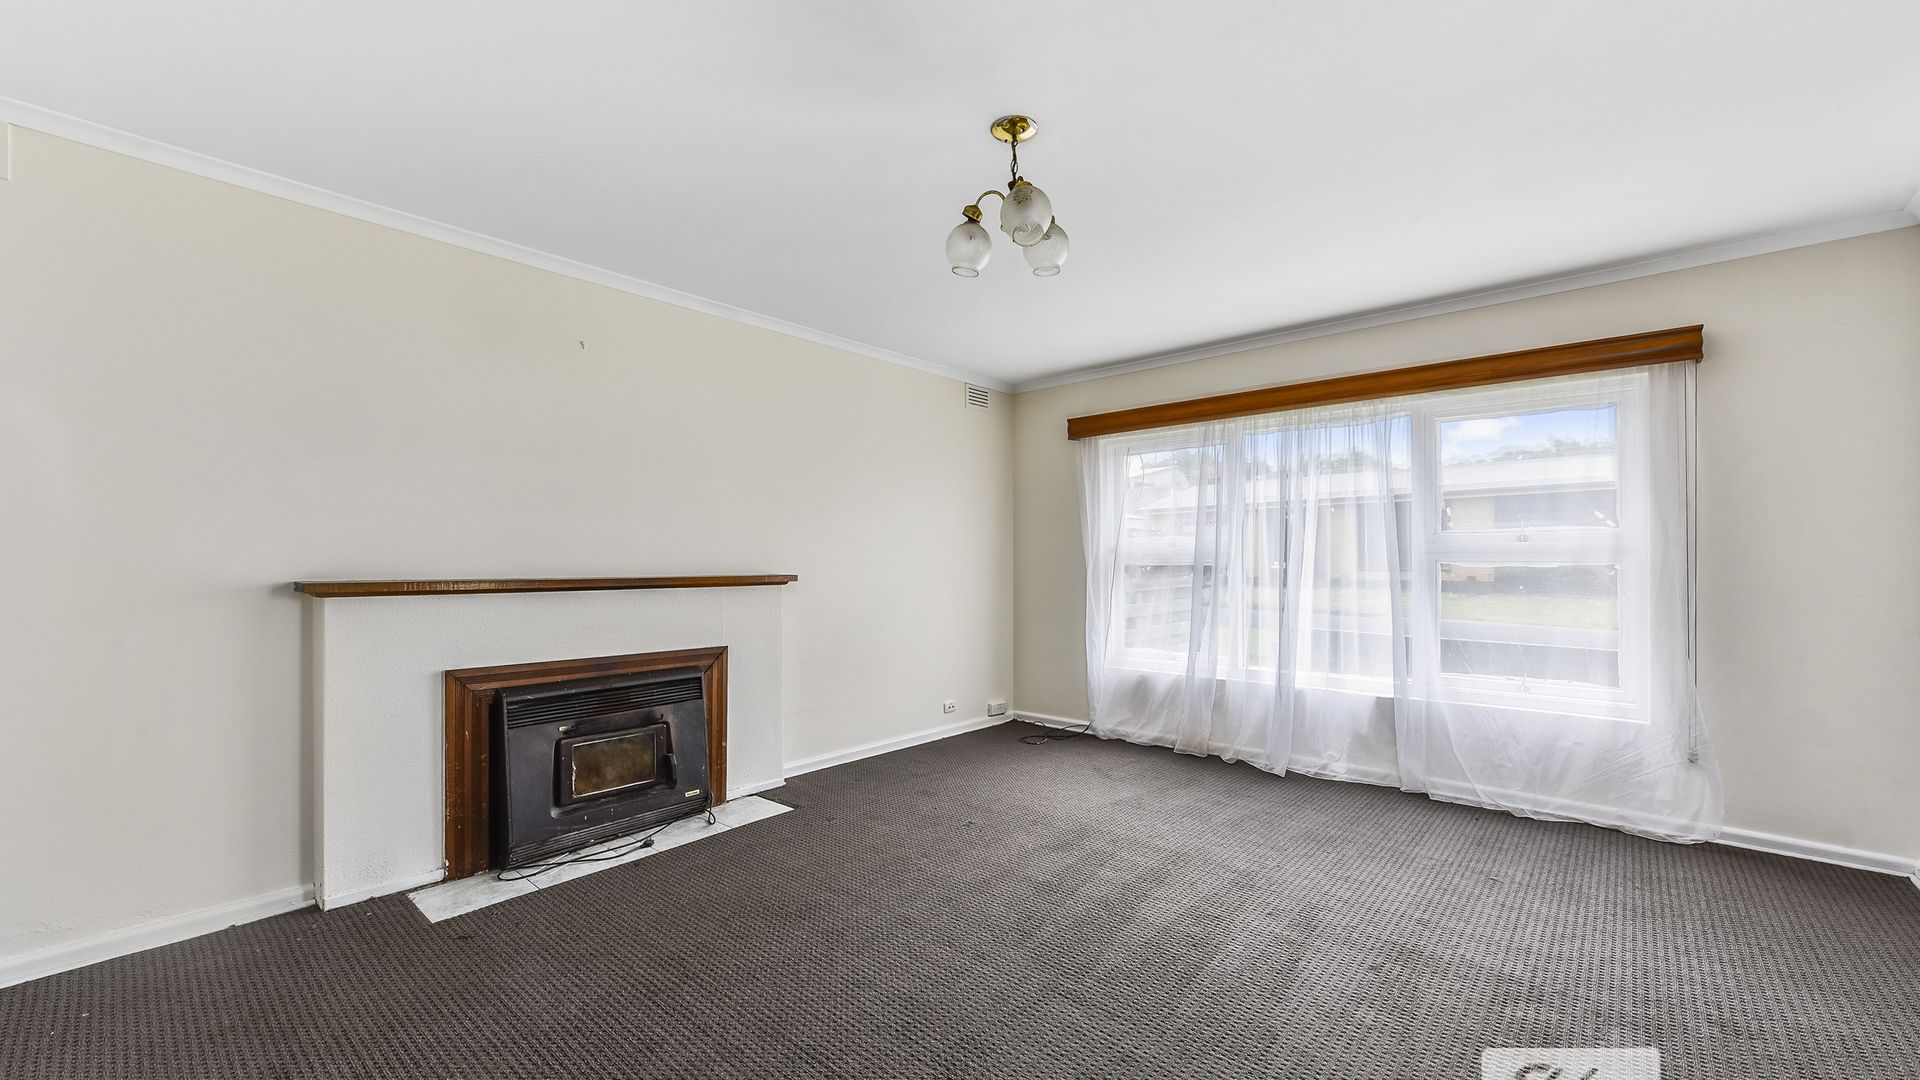 14 GRIFFITHS STREET, Mount Gambier SA 5290, Image 2